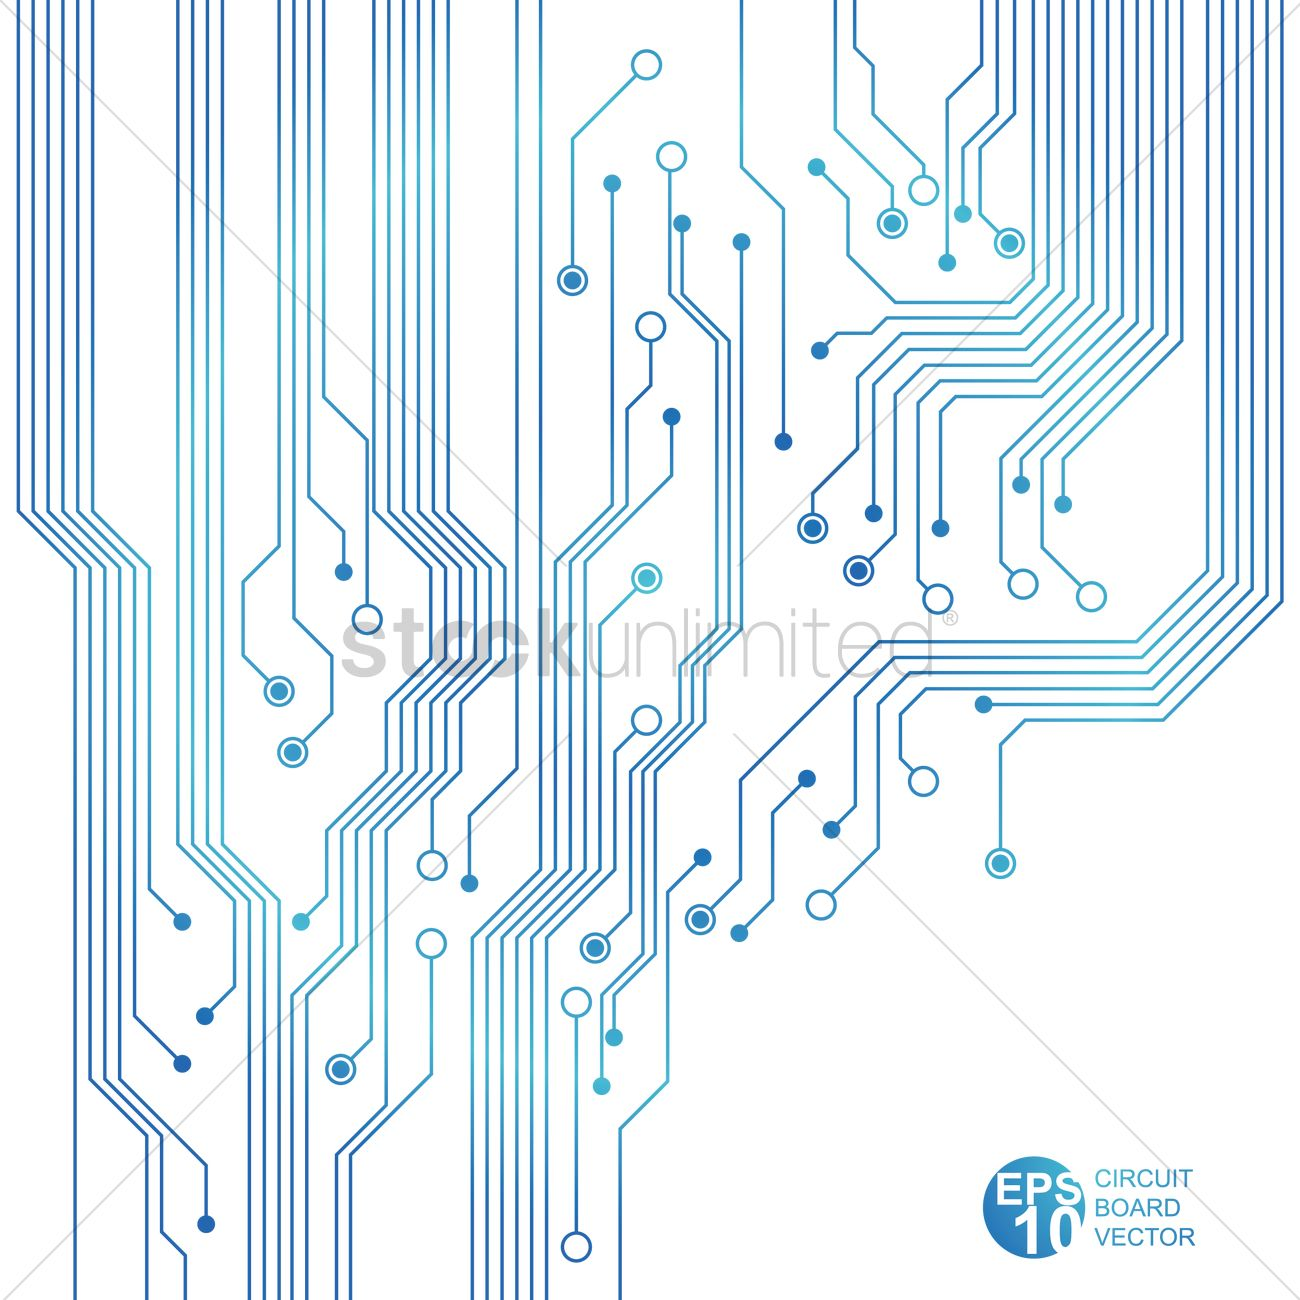 Blue circuit board Vector Image - 1527708 | StockUnlimited